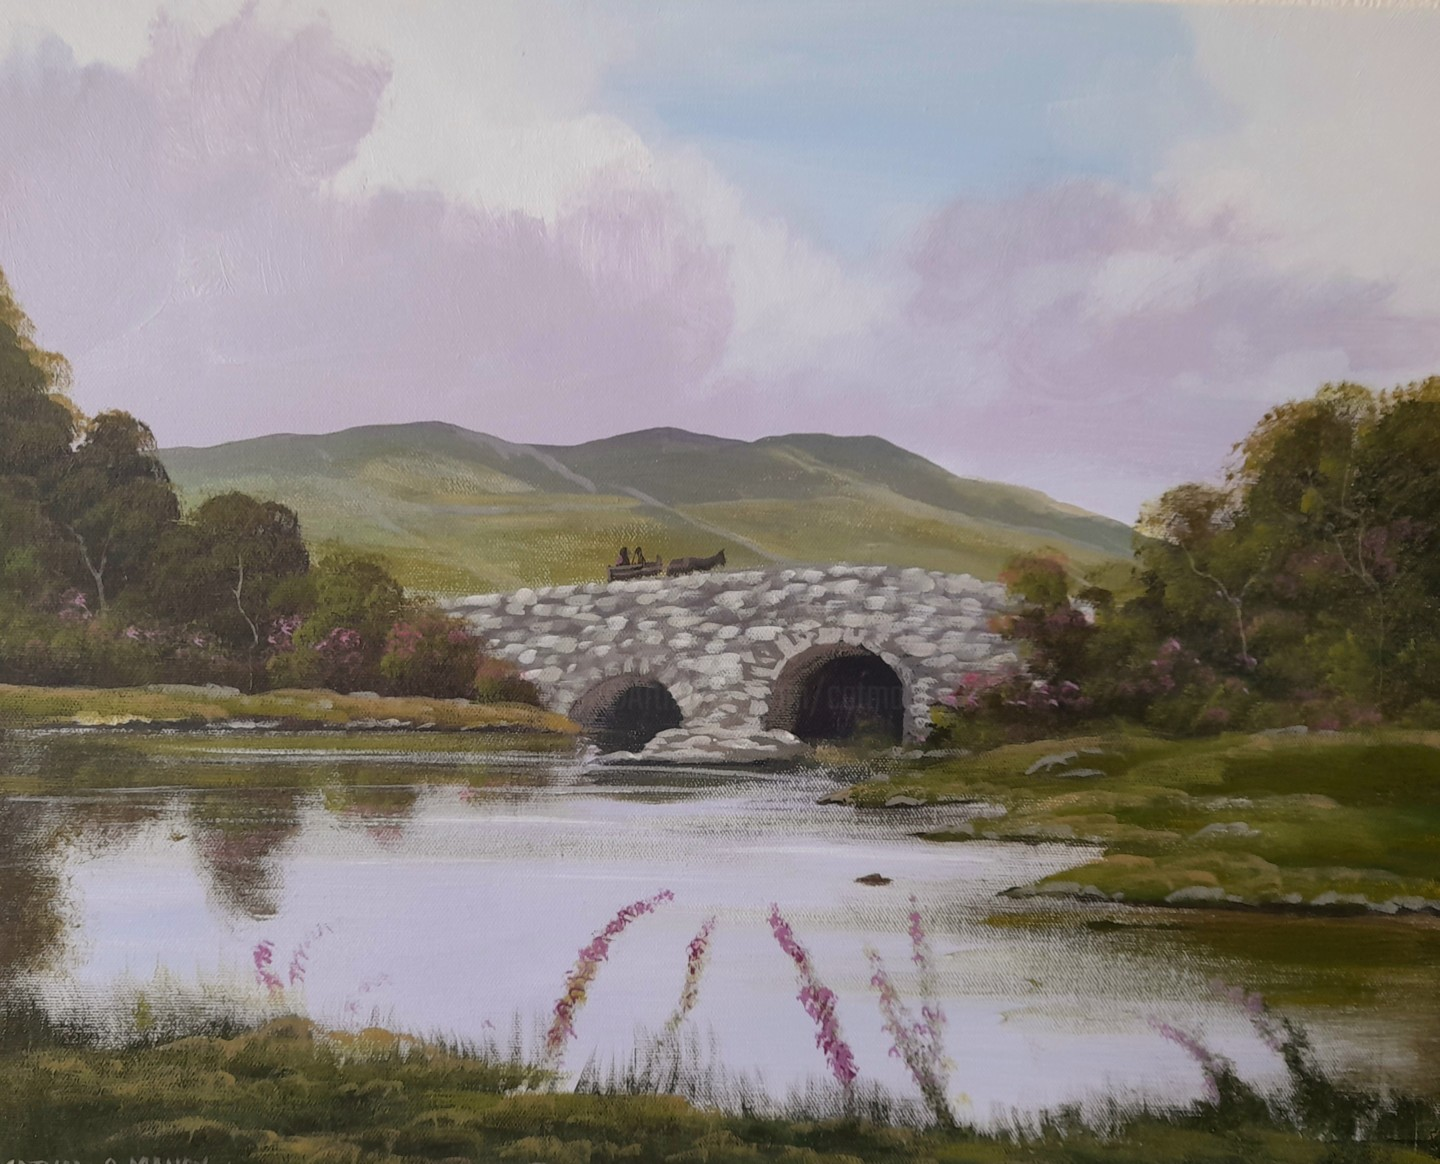 Cathal O Malley - Quiet man bridge,co galway